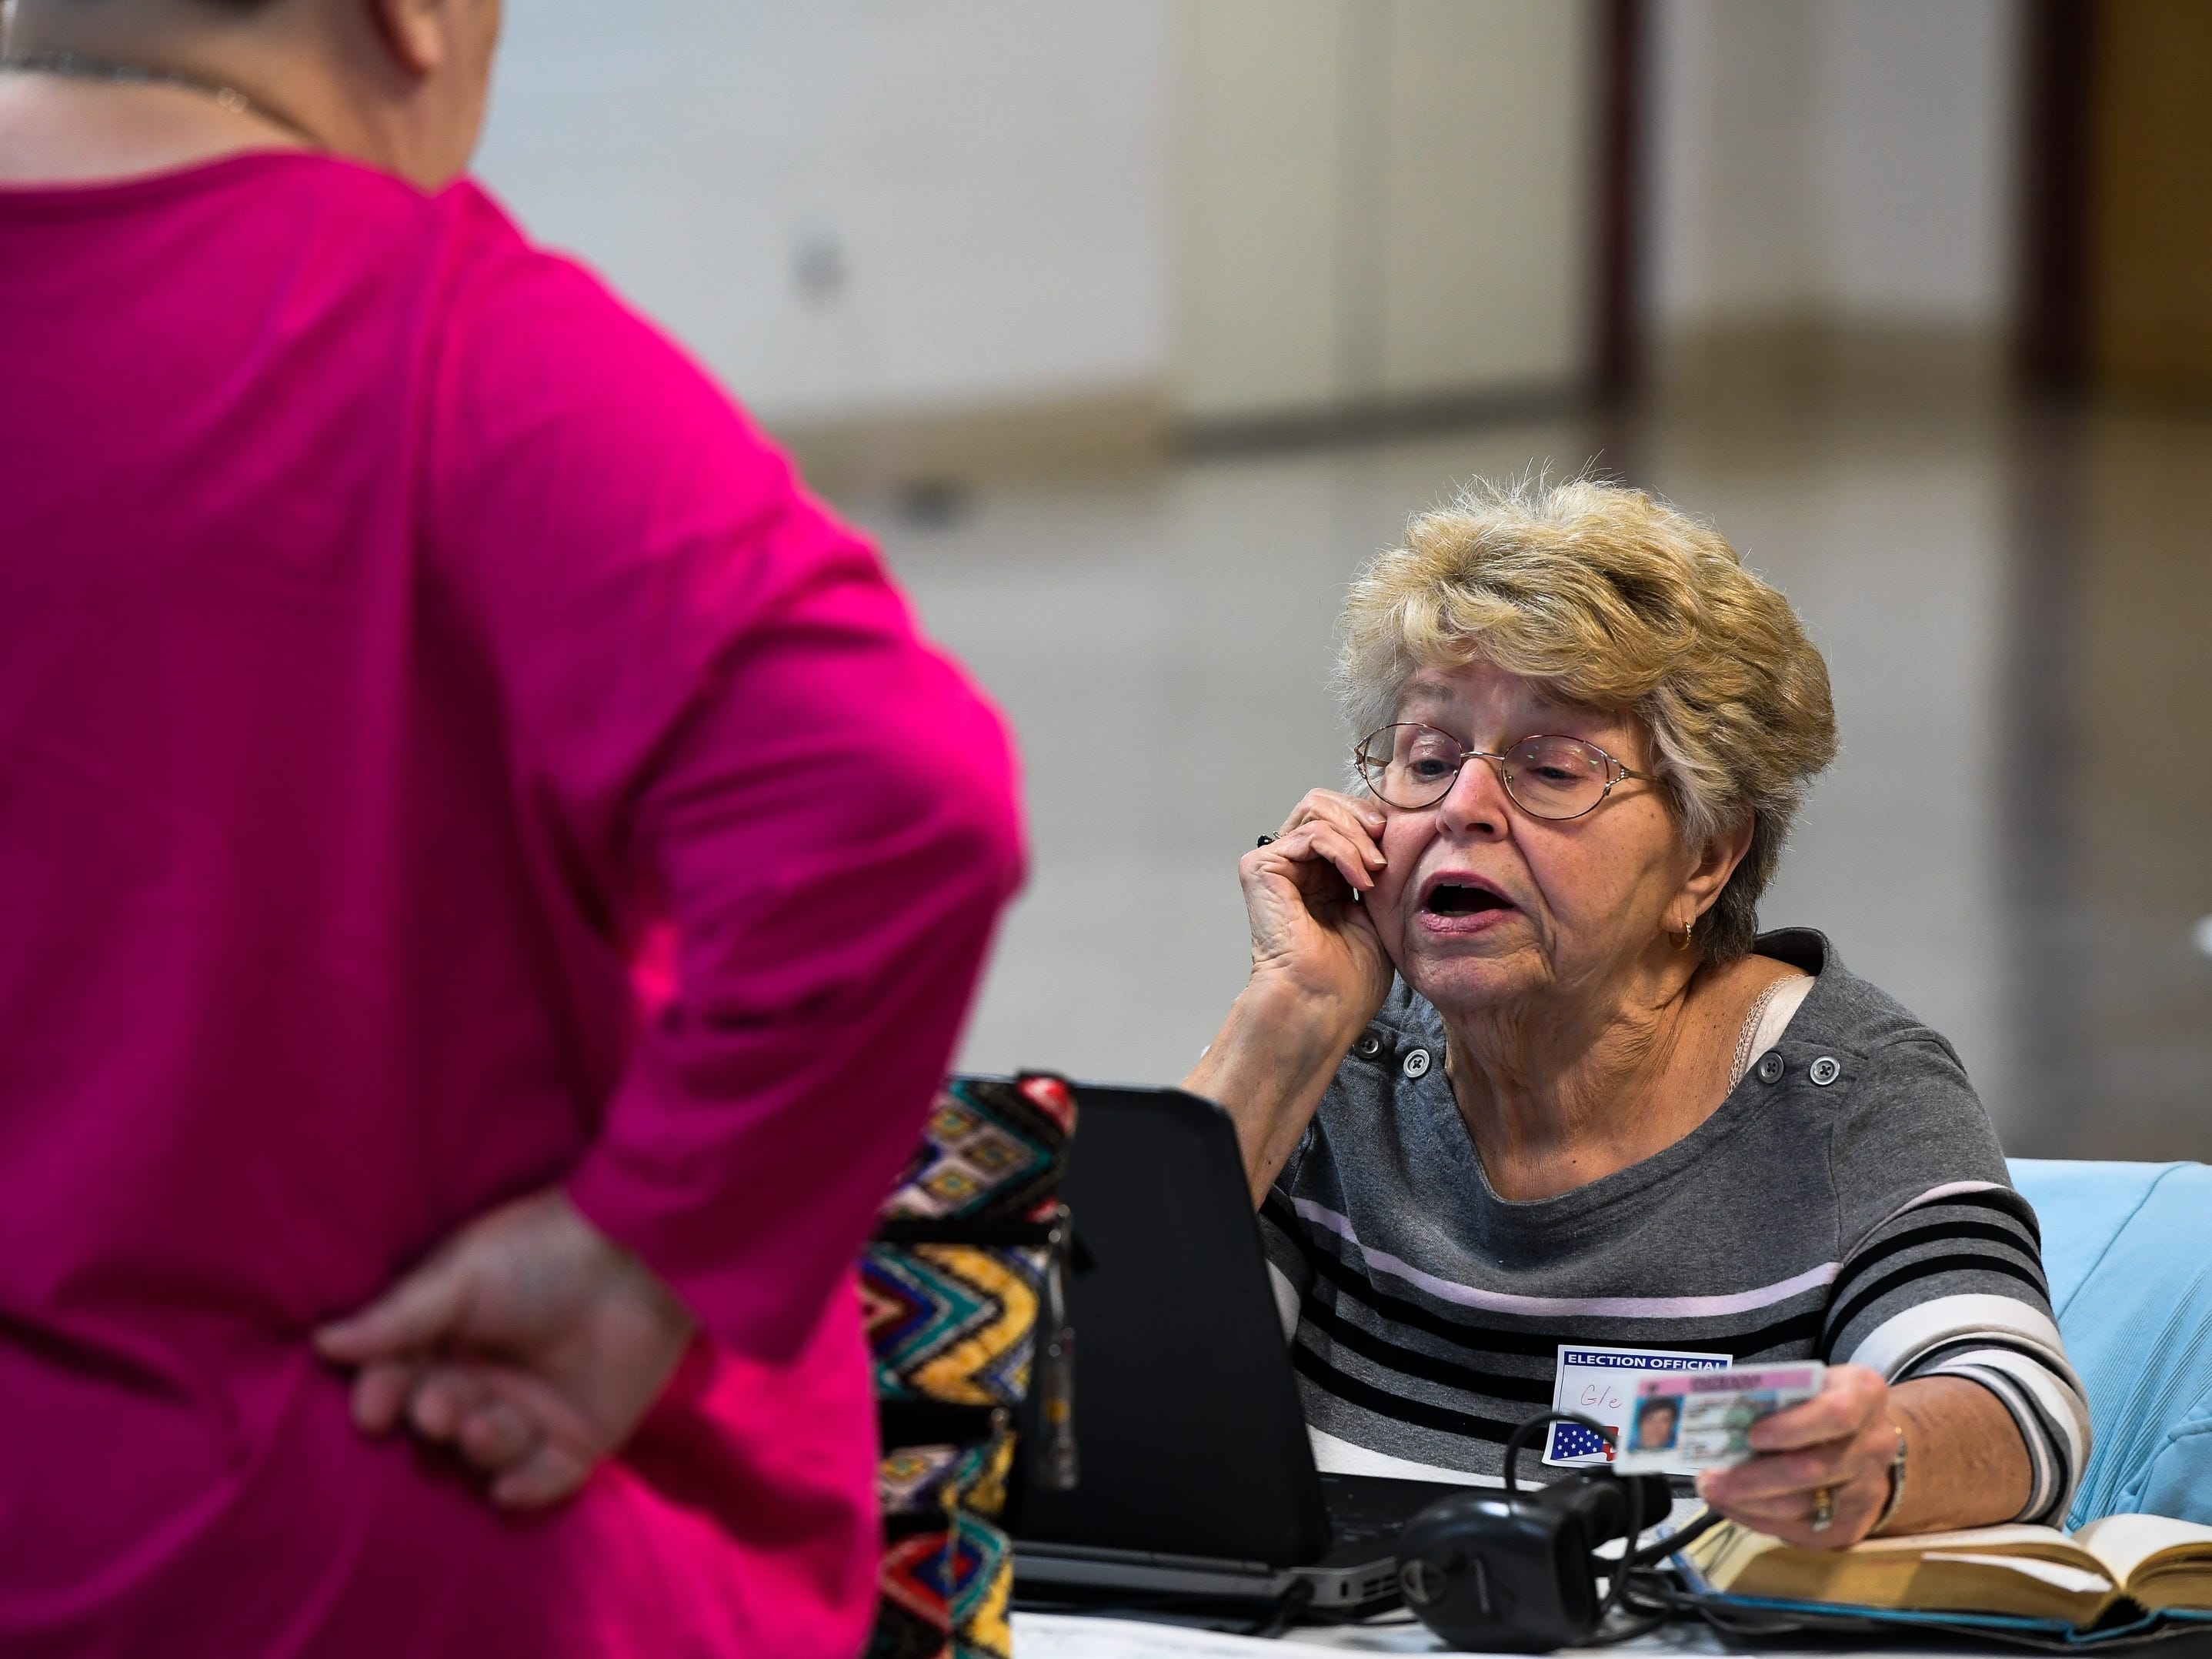 Election clerk, Glenda Gilham checks in a voter at the Methodist Temple on Lincoln Avenue in Evansville Tuesday, May 7, 2019.